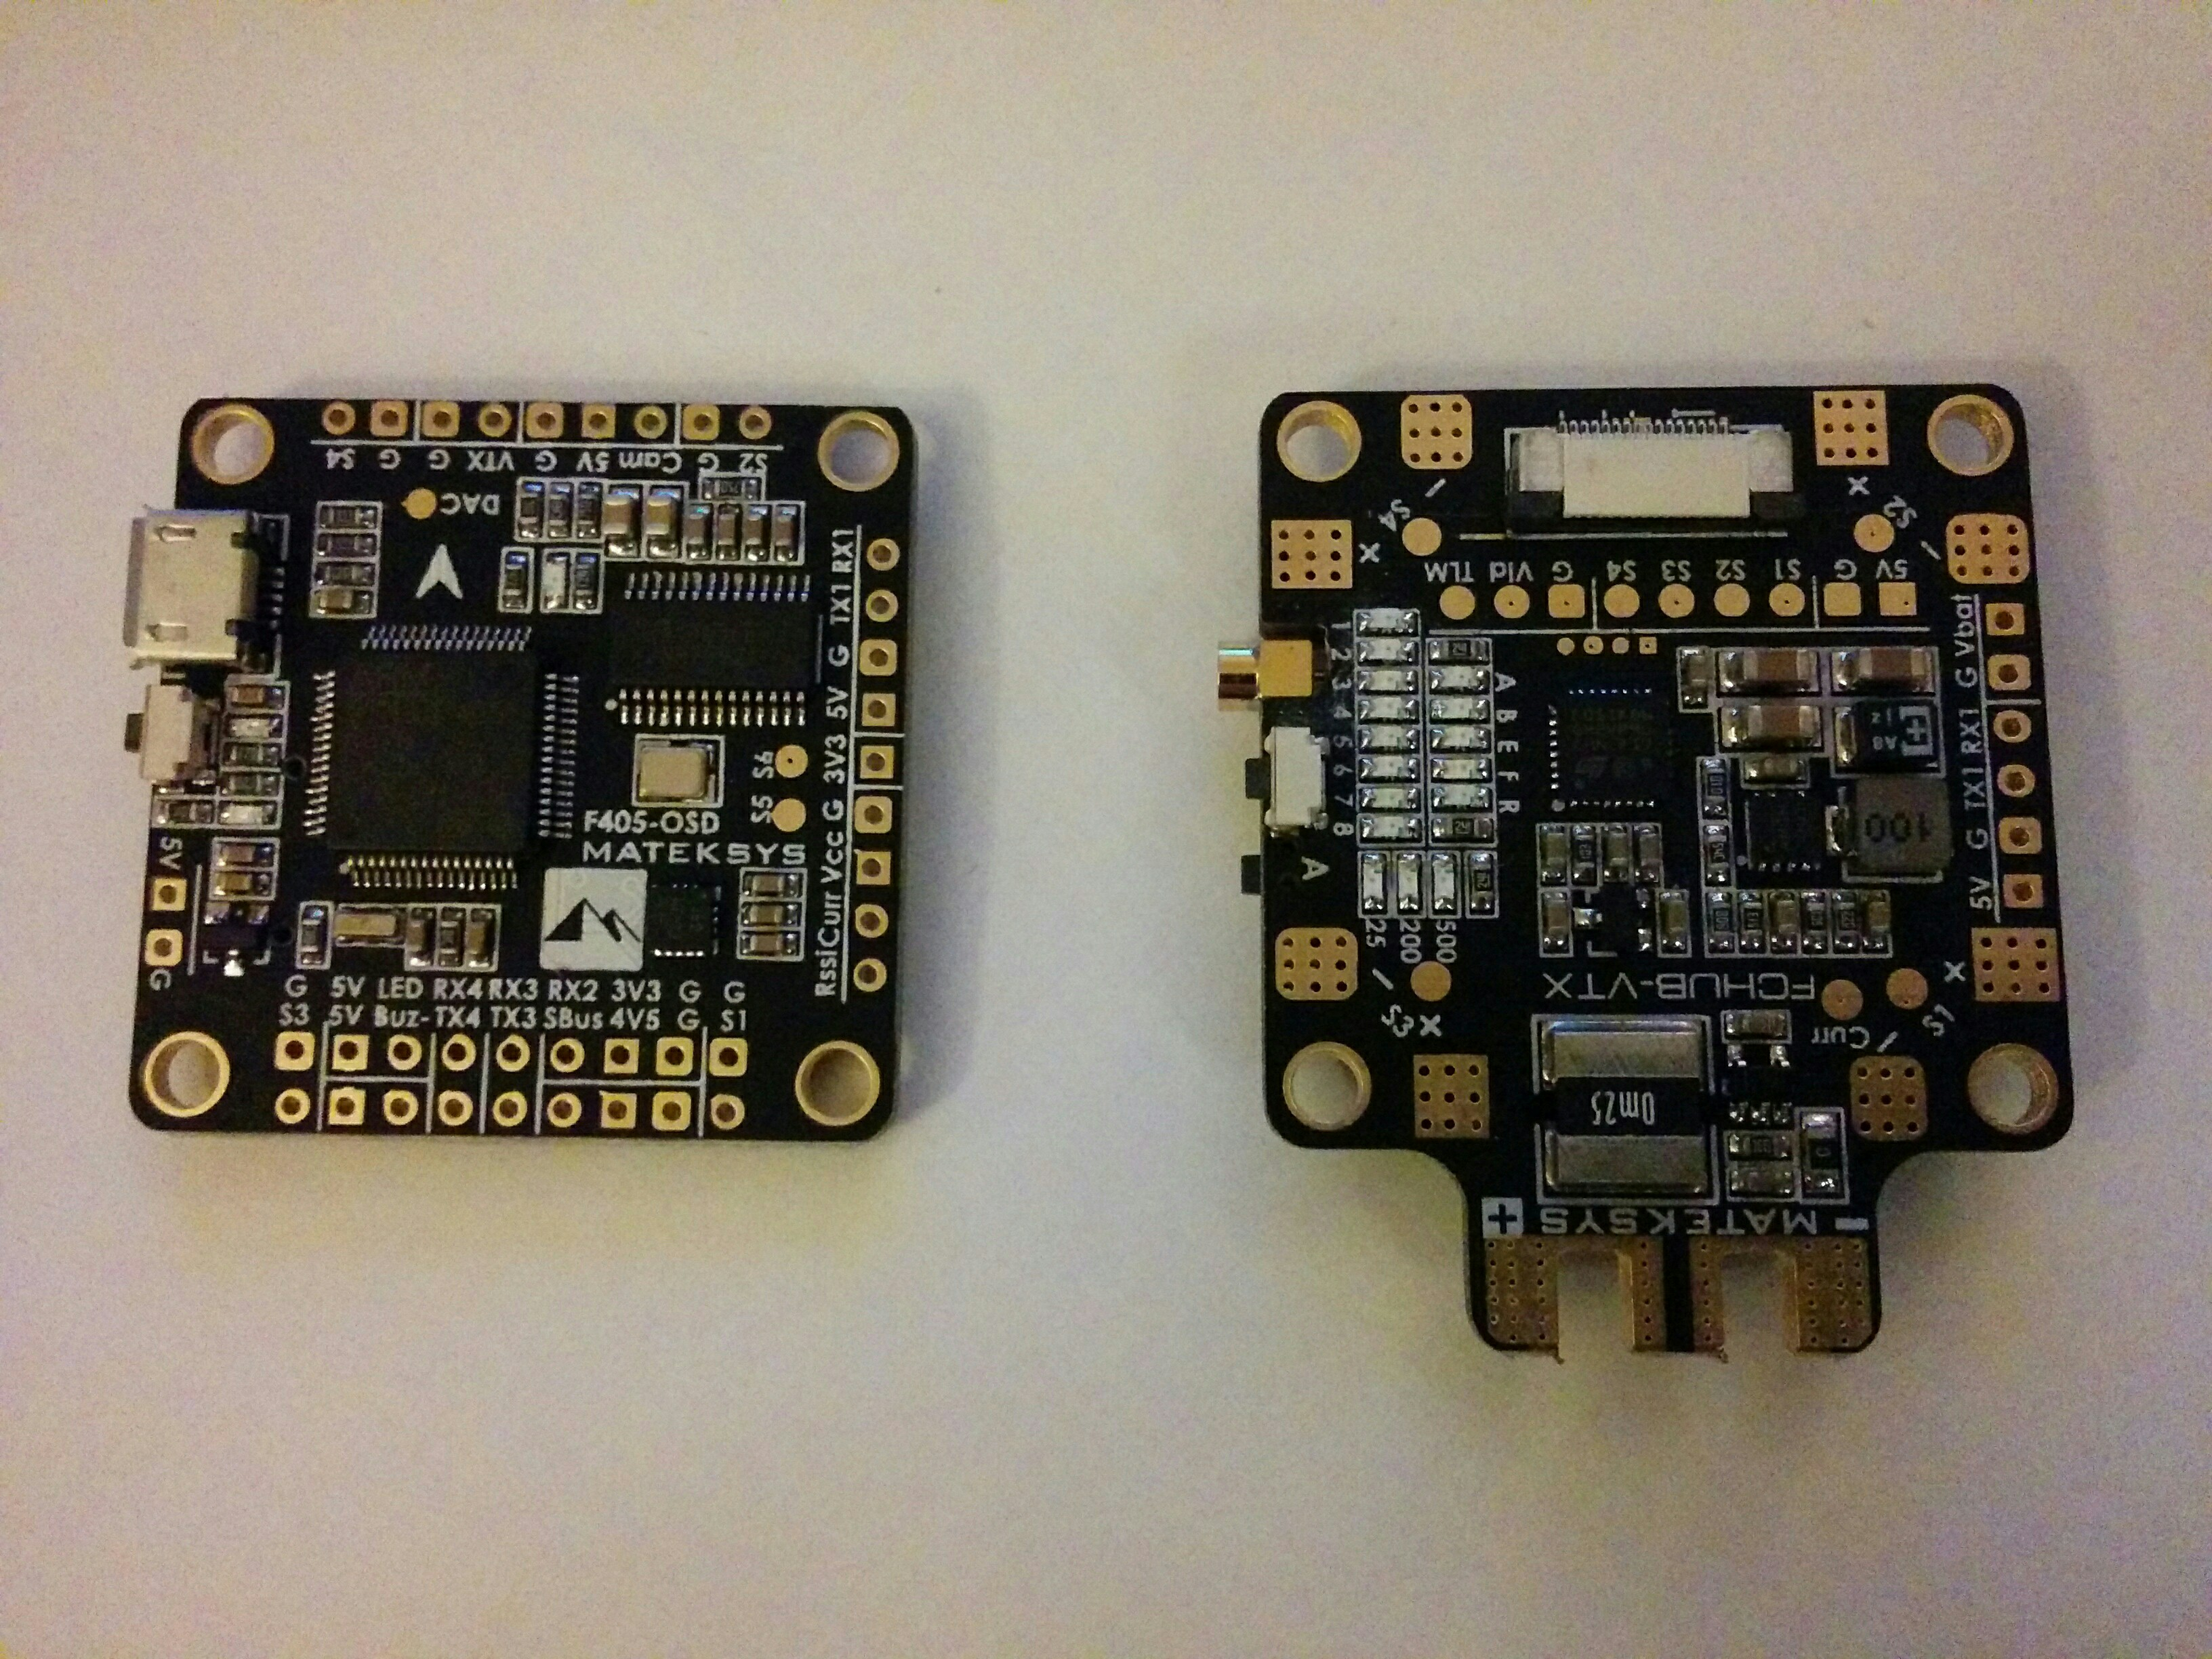 Matek have really improved the quality and design of their products  recently and this pair of boards provides an F4 processor, 32KHz capable  gyro, ...